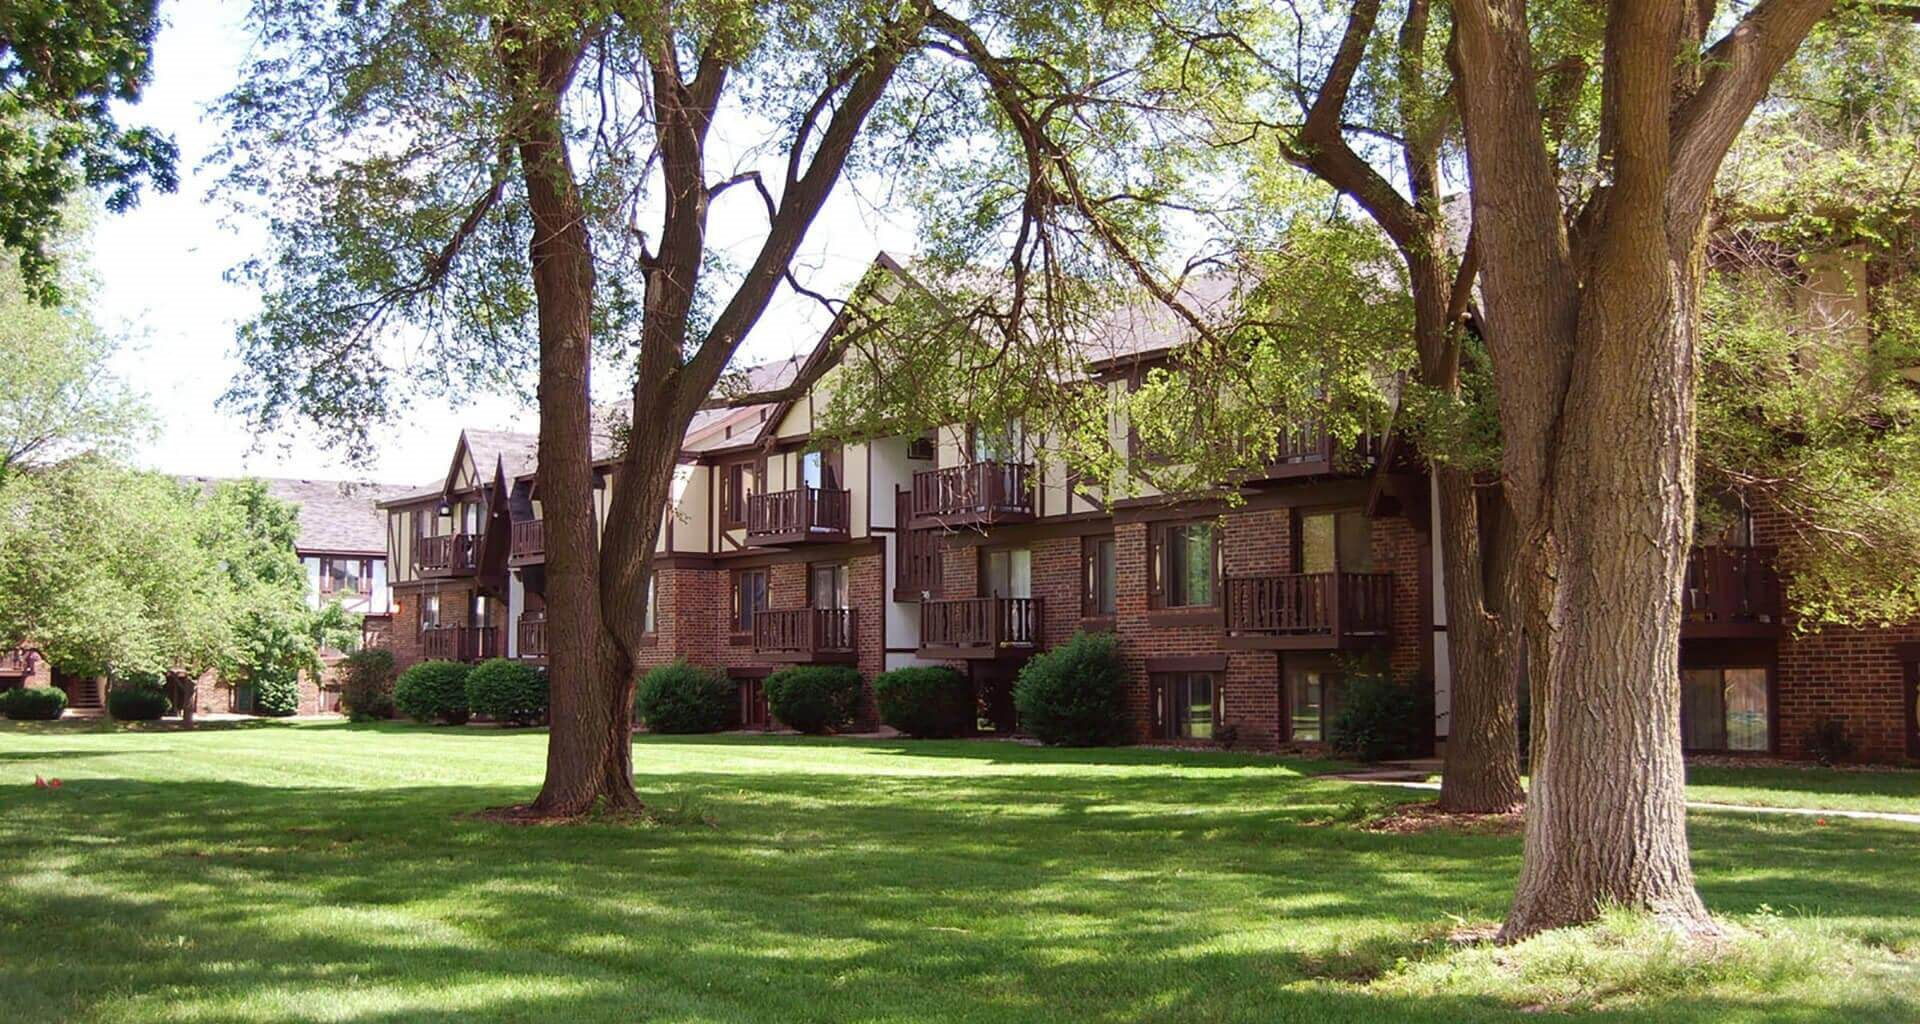 Park-Like Setting at Fairlane Apartments, Michigan